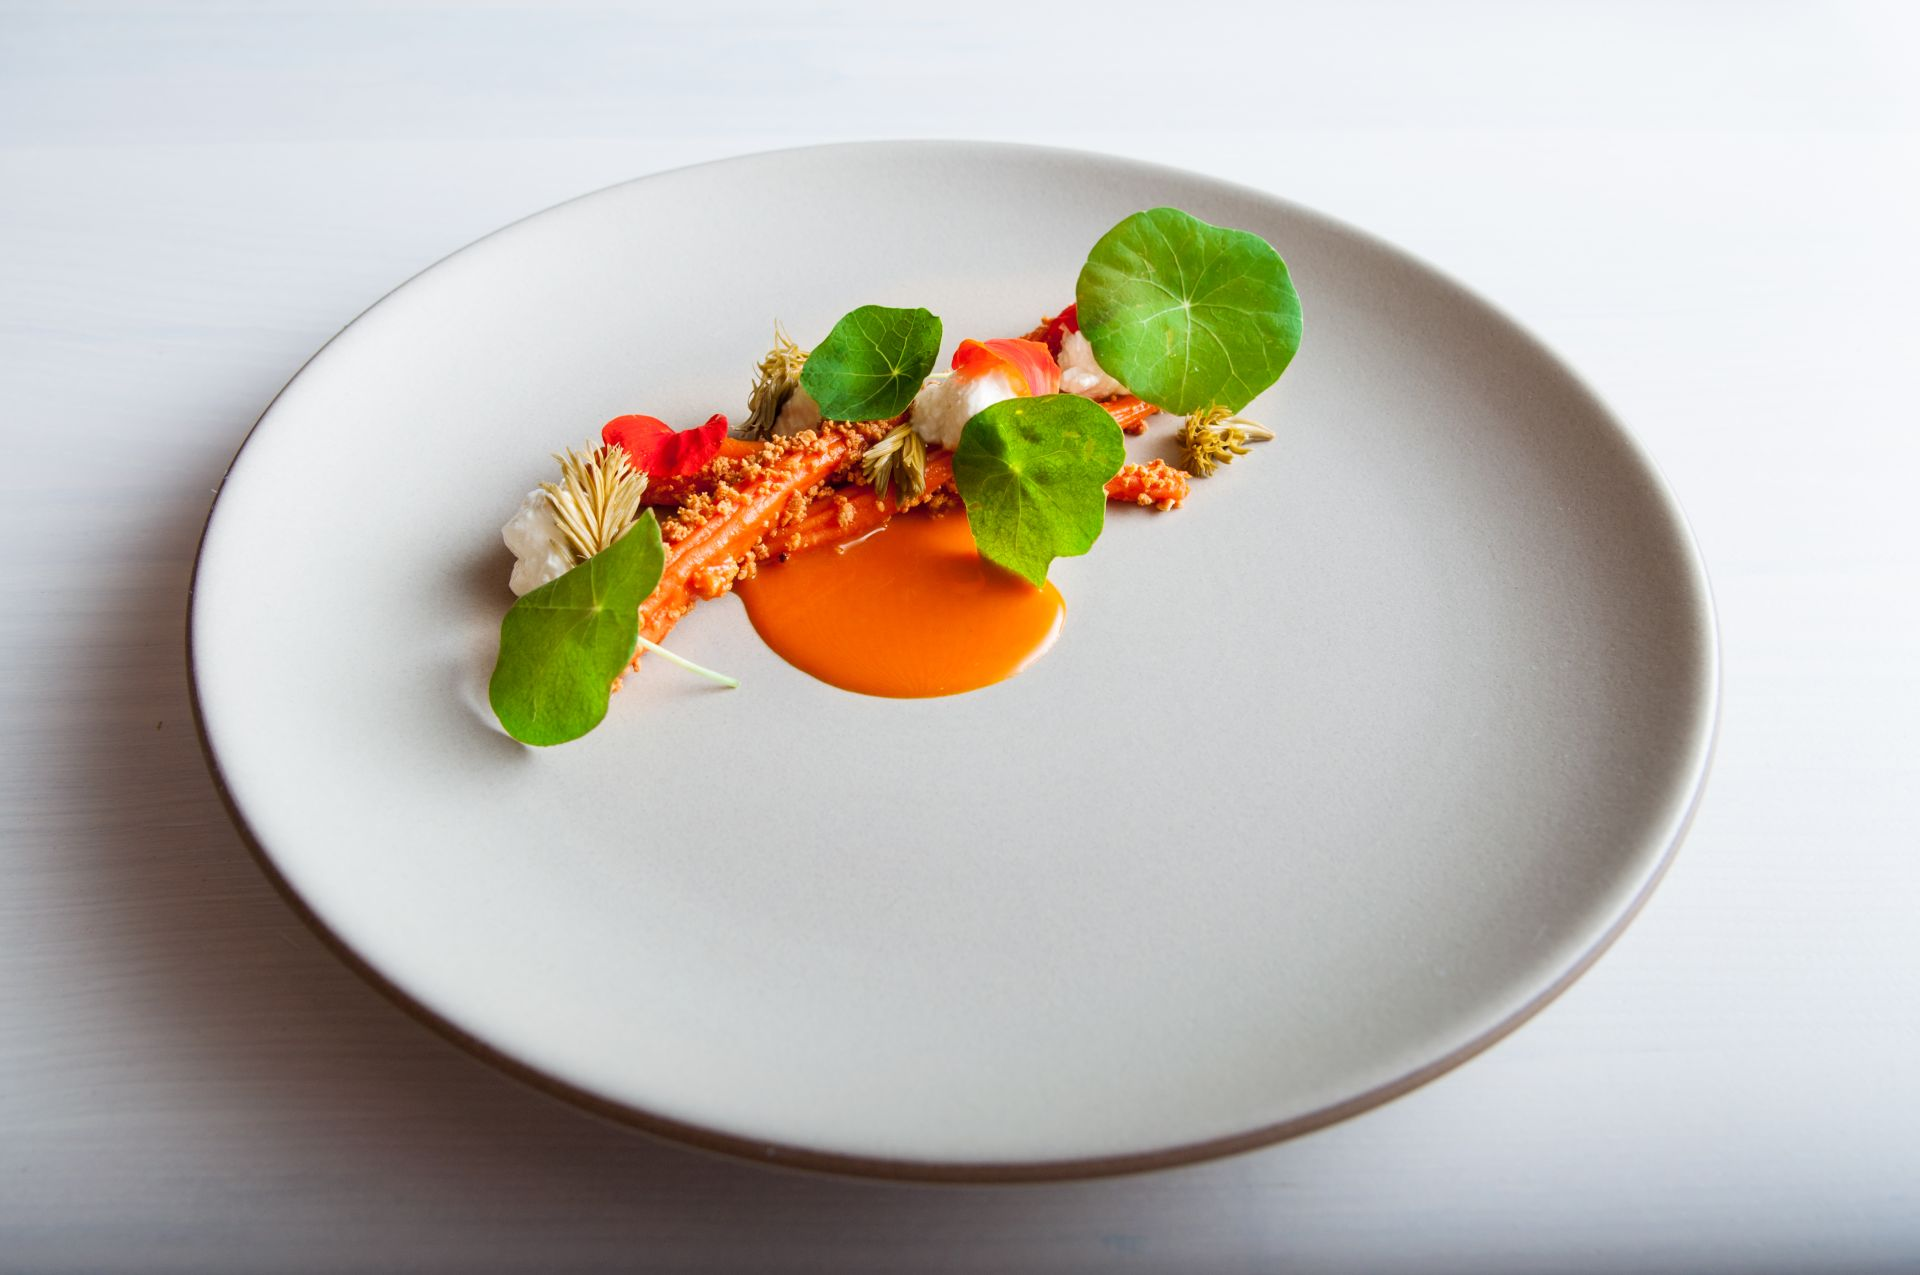 In Situ Carrot, Sour Curd, Pickled Pine_Matt Orlando_Amass